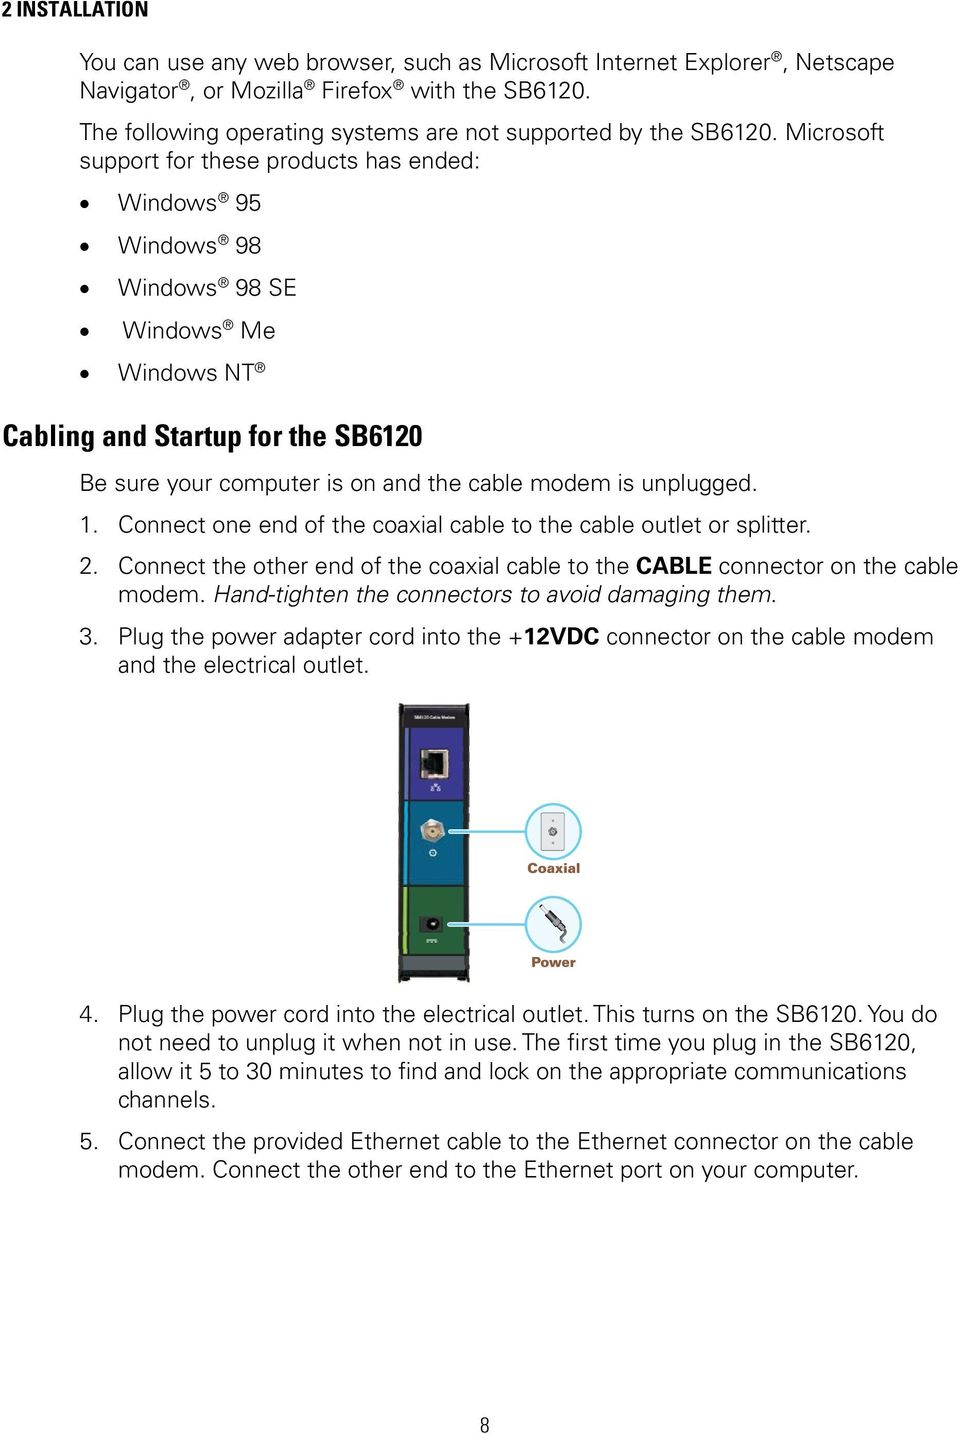 user guide sb6120 surfboard docsis 3 0 cable modem pdf rh docplayer net Motorola SB6120 Cable Modem Motorola SB6120